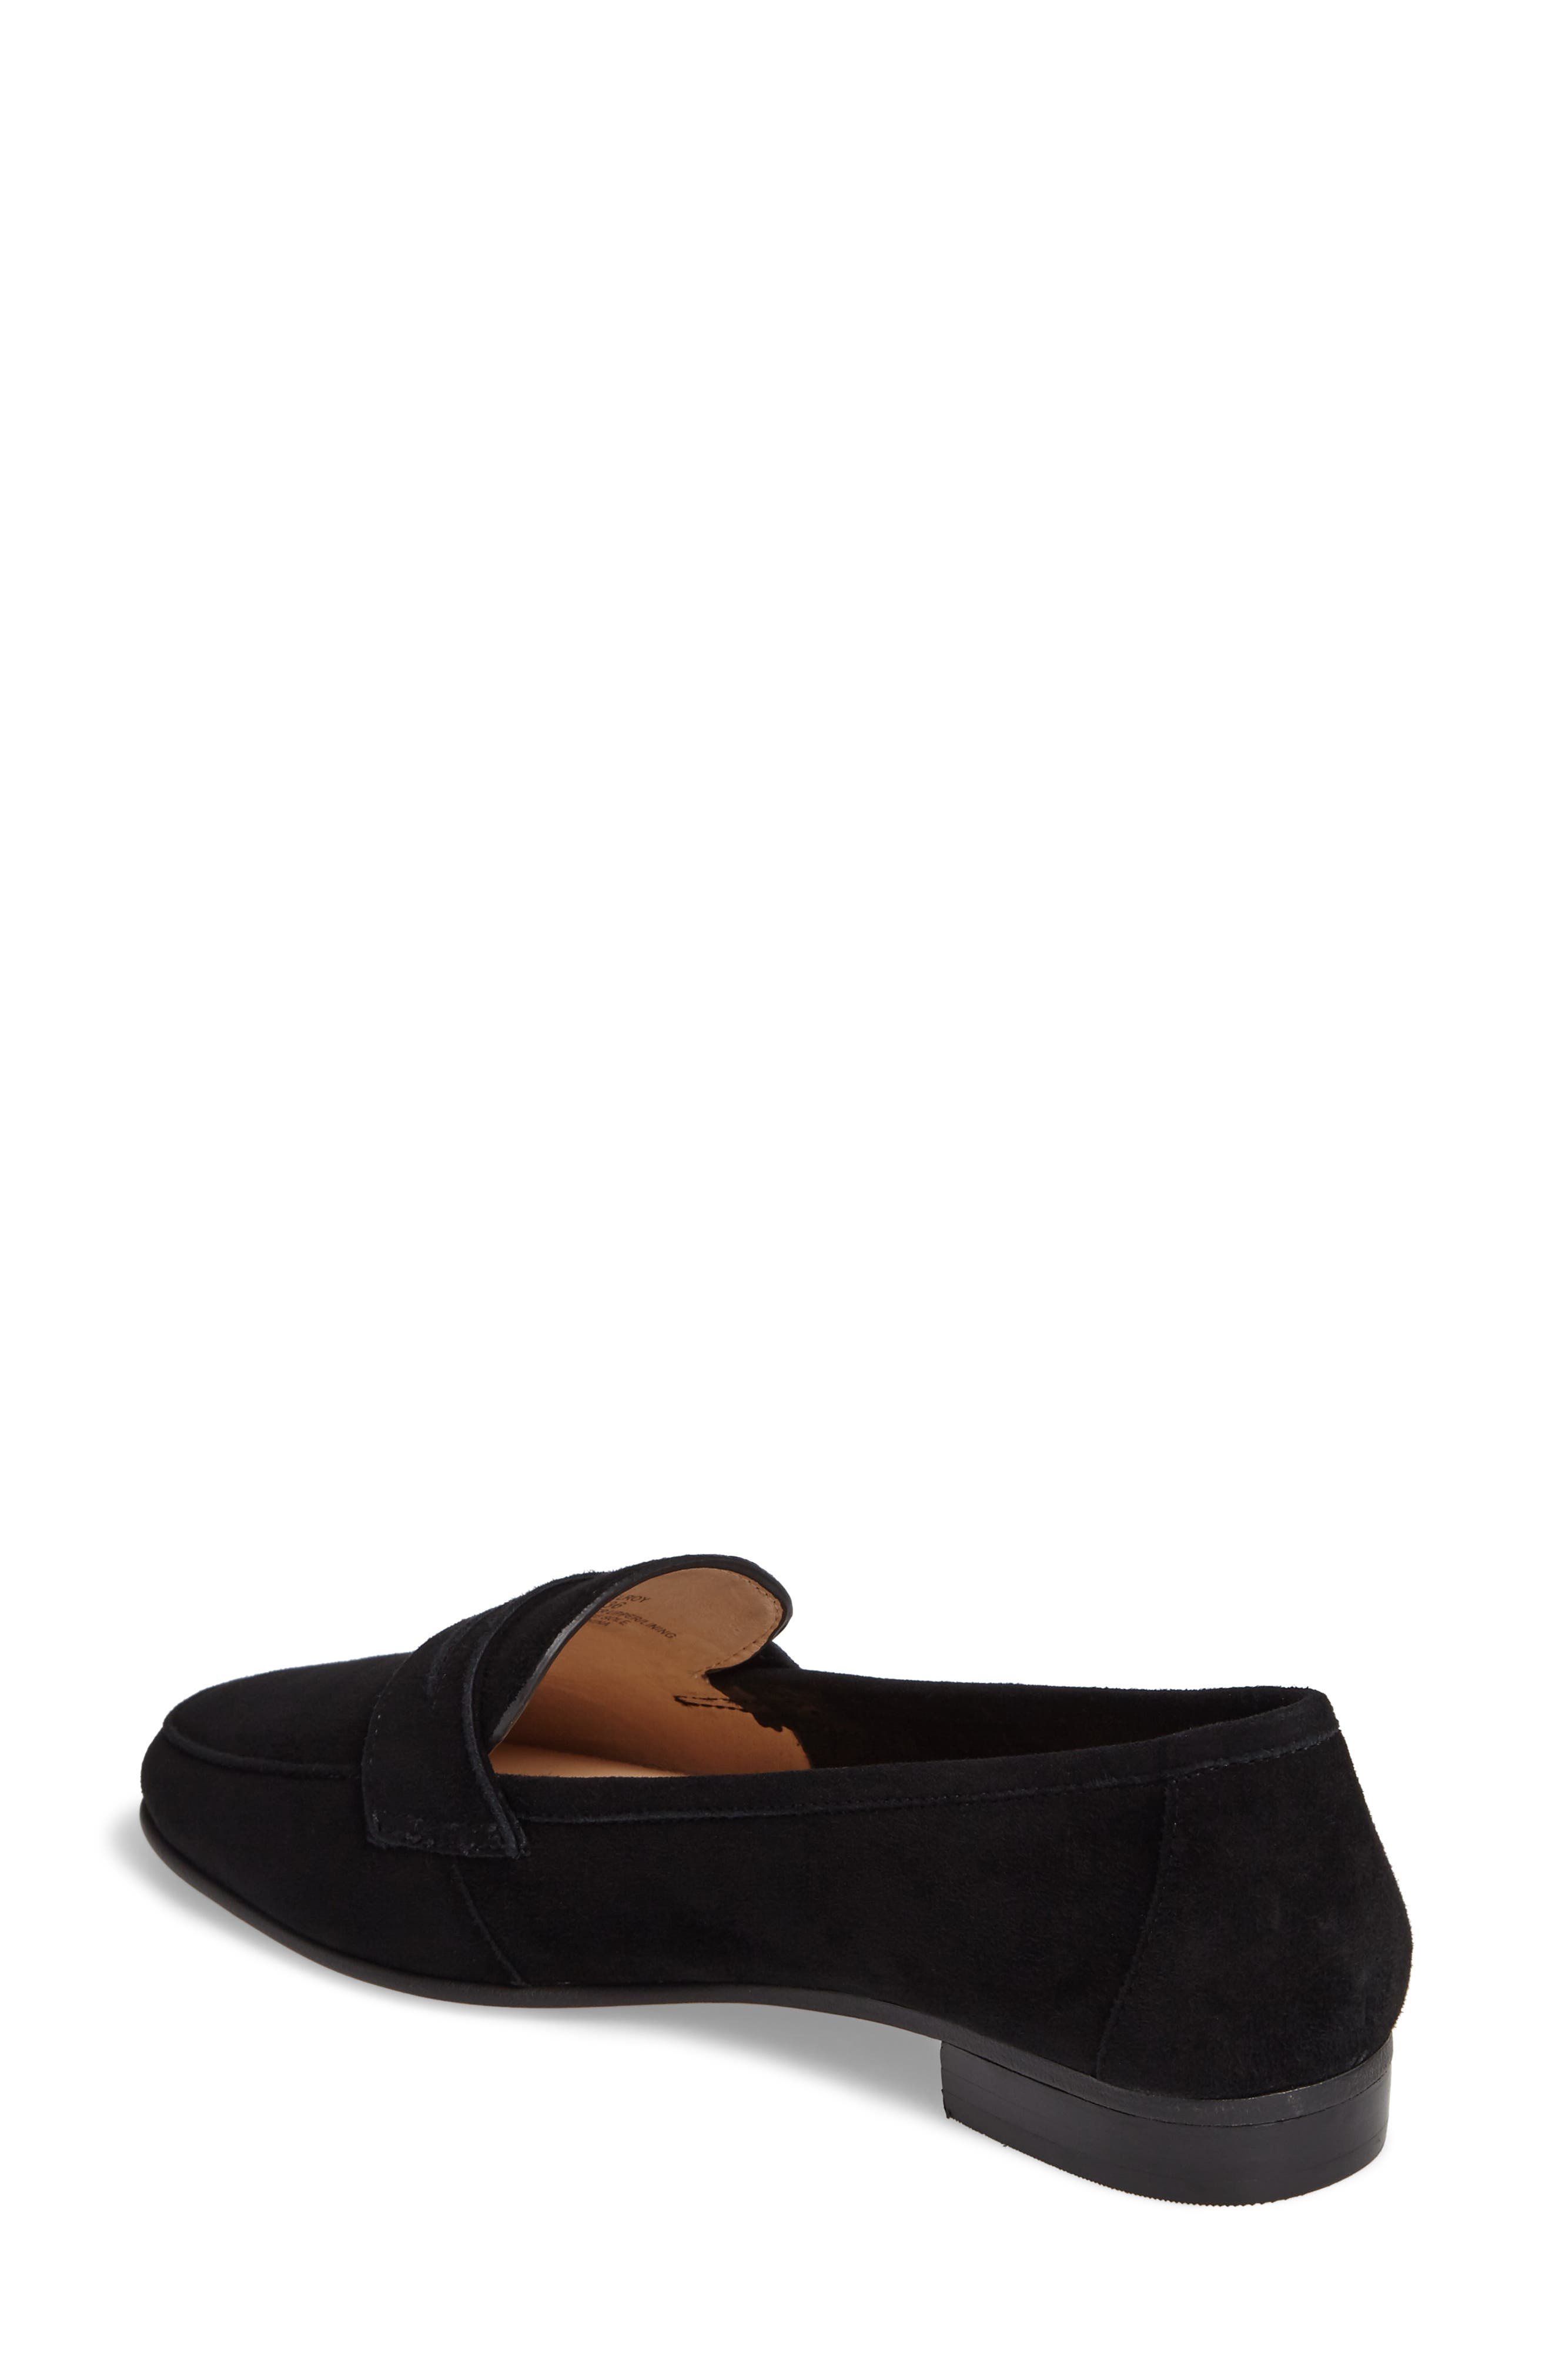 Elroy Penny Loafer,                             Alternate thumbnail 2, color,                             002